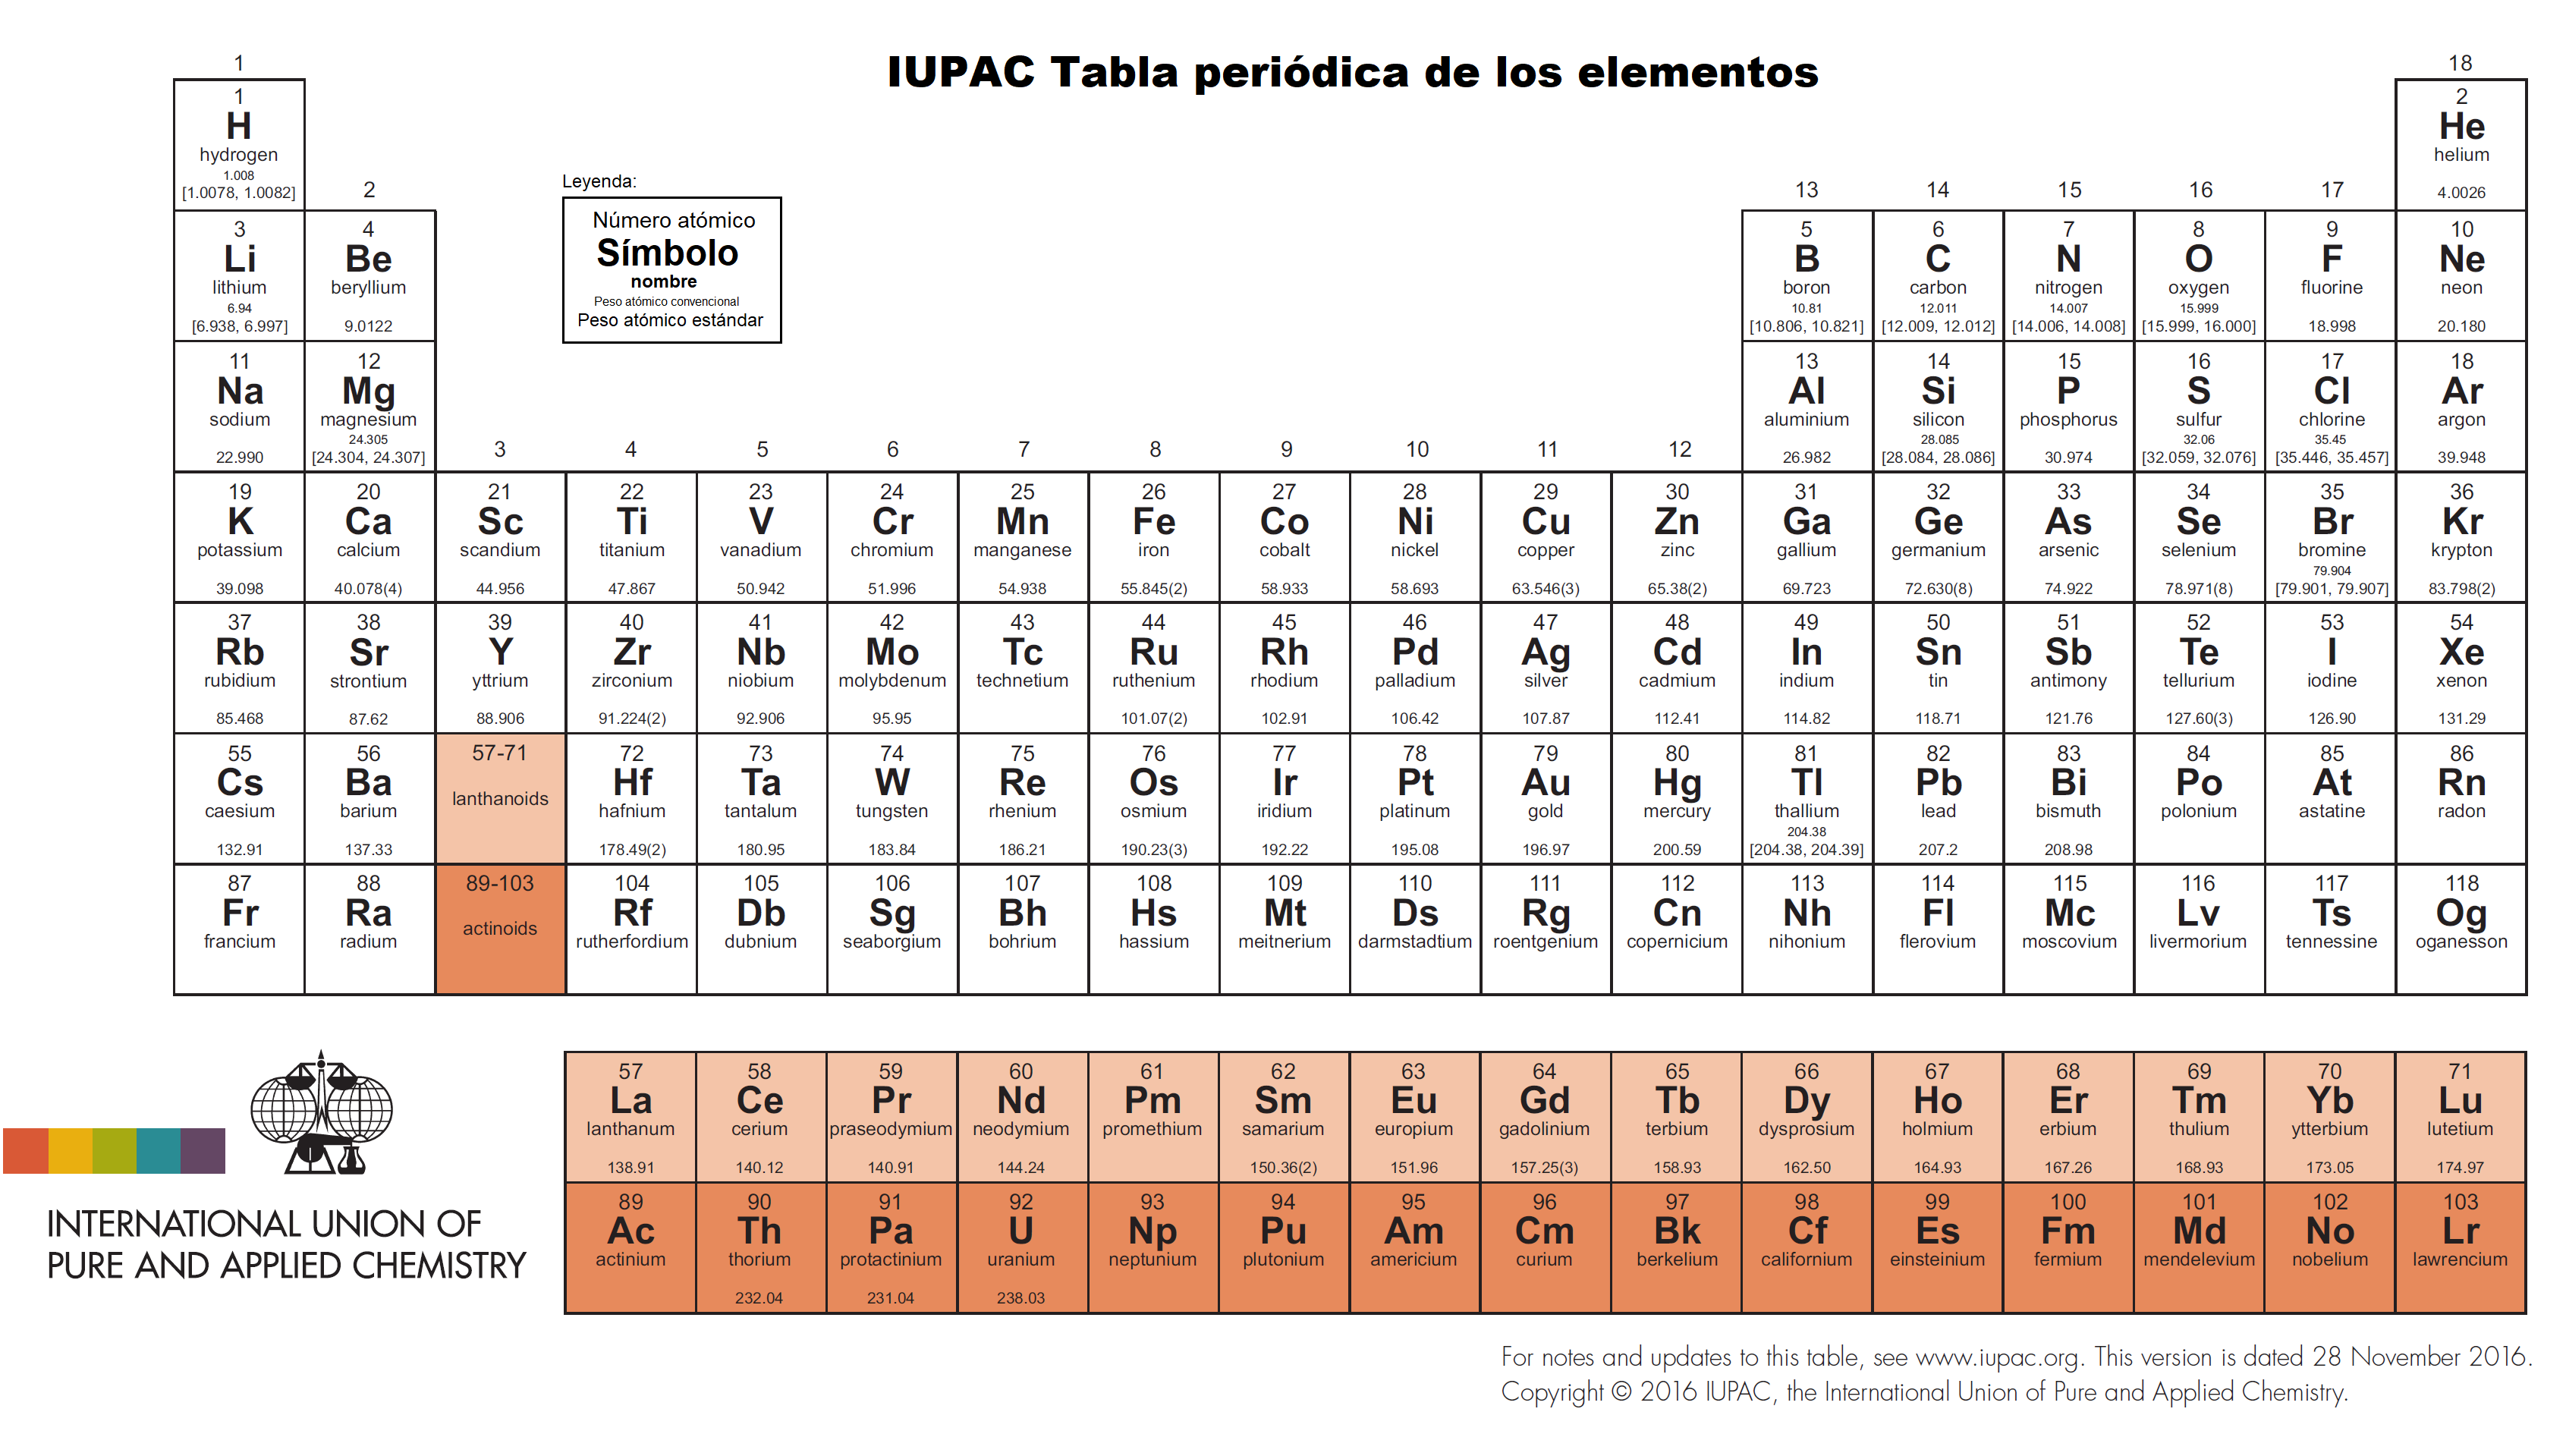 Tabla peridica cbrn tabla peridica actual publicada por la iupac httpsiupacwhat we doperiodic table of elements urtaz Image collections